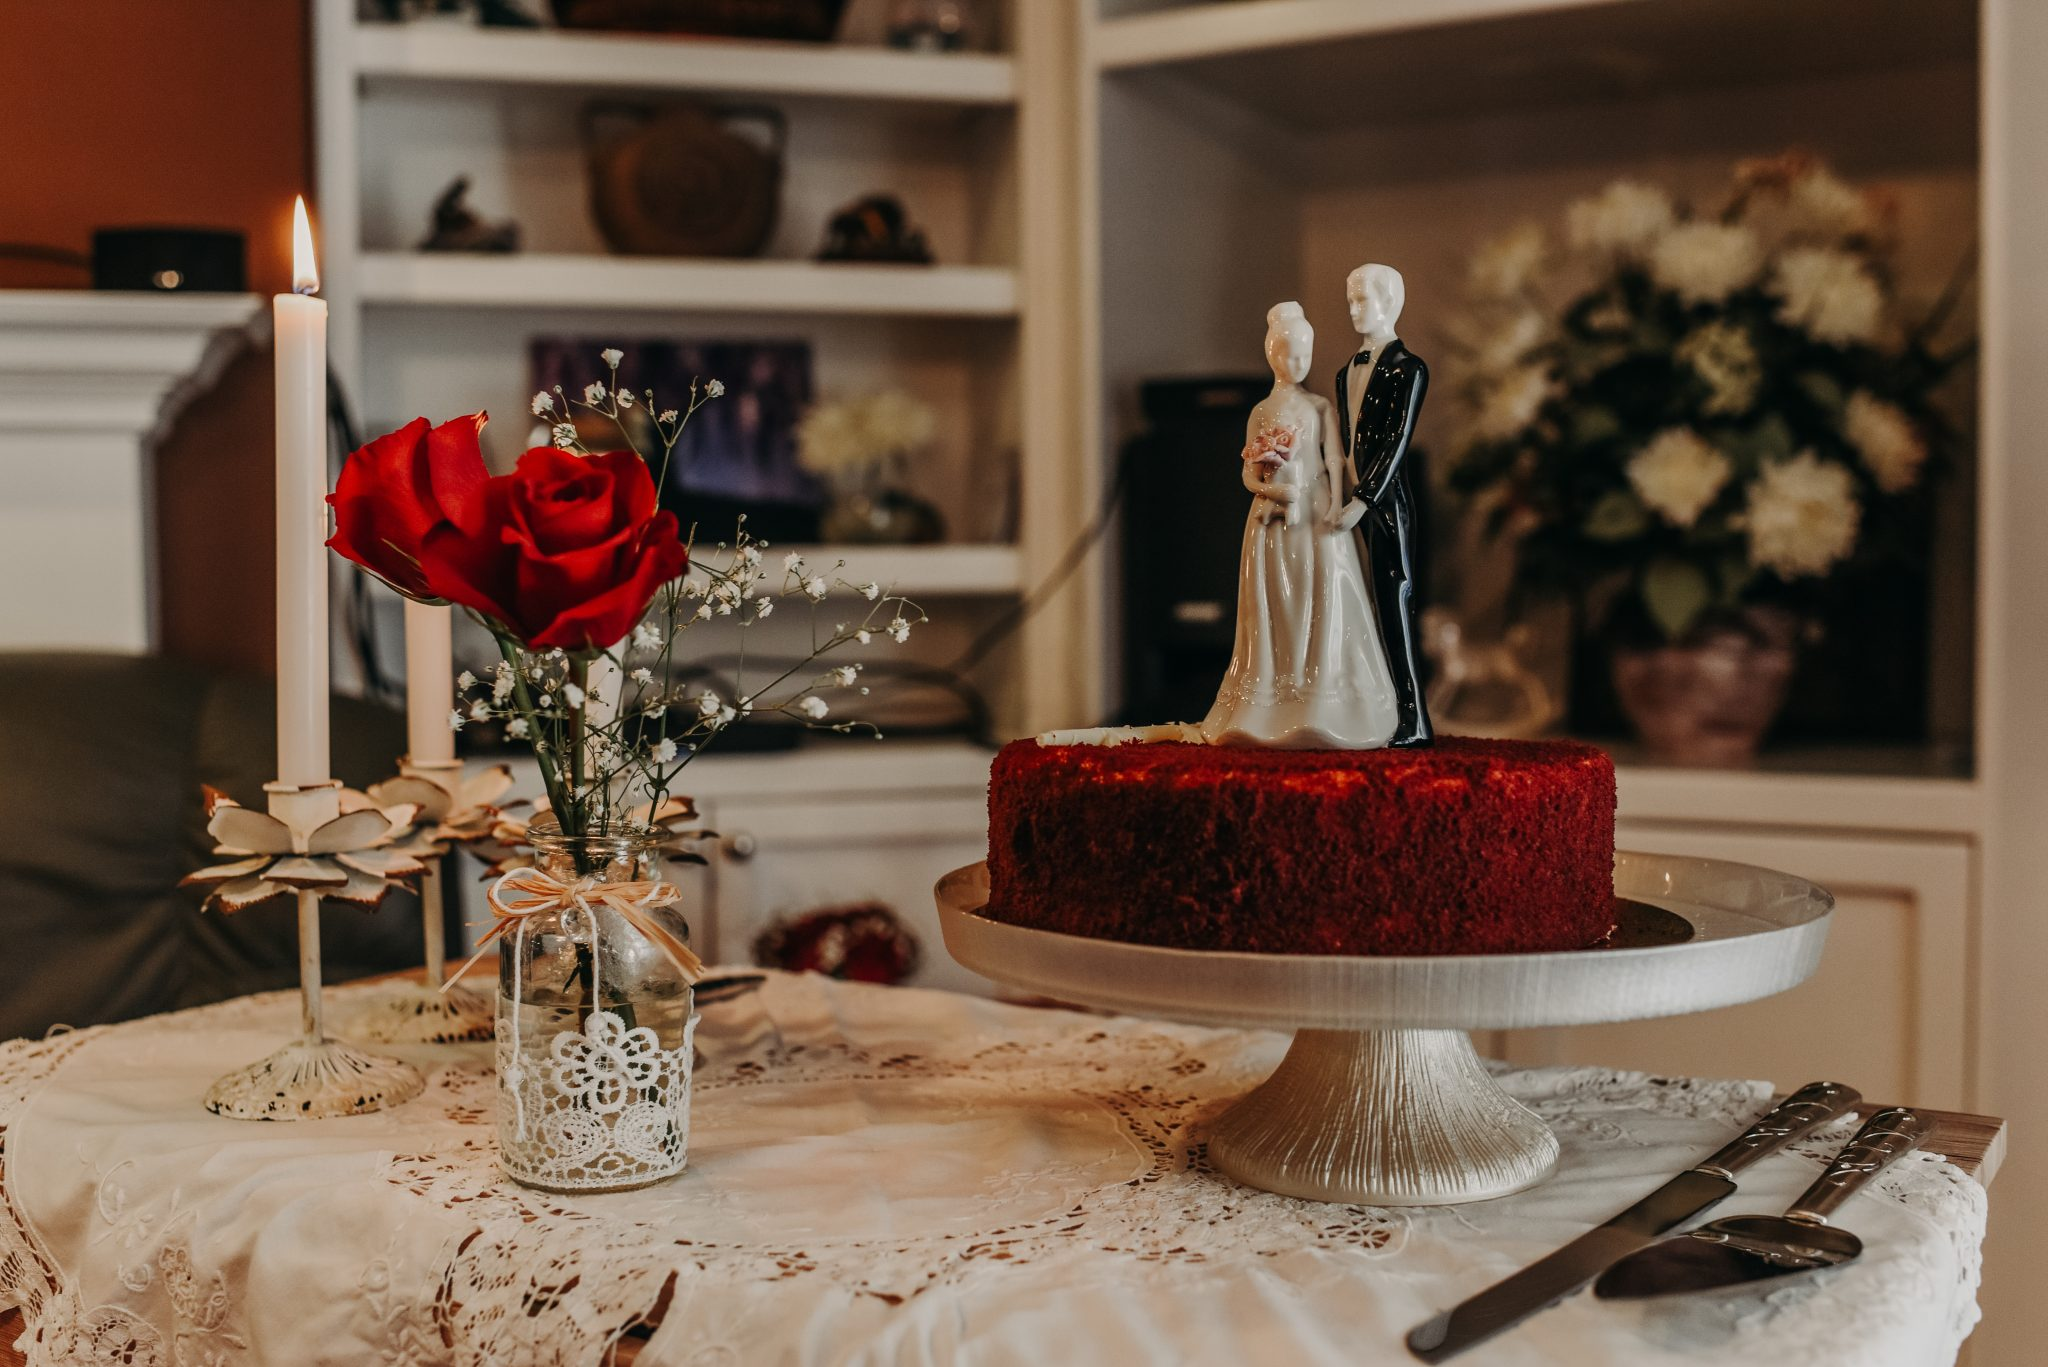 Intimate House wedding with red velvet cake in Edmonton